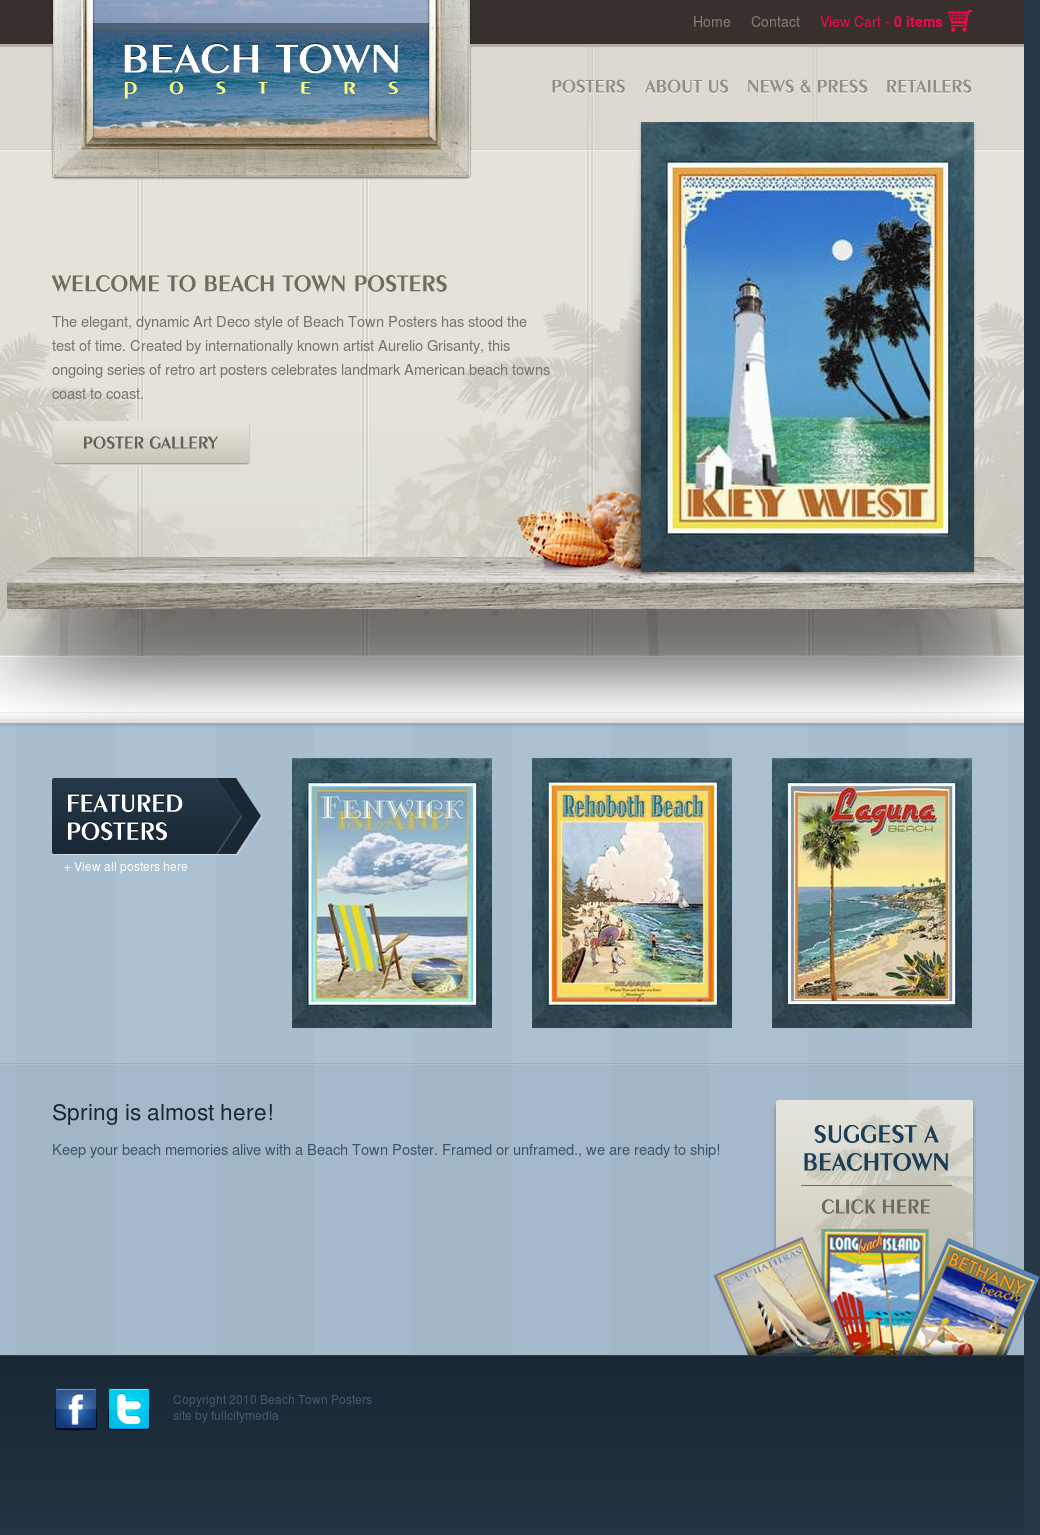 Beach Town Posters Website History